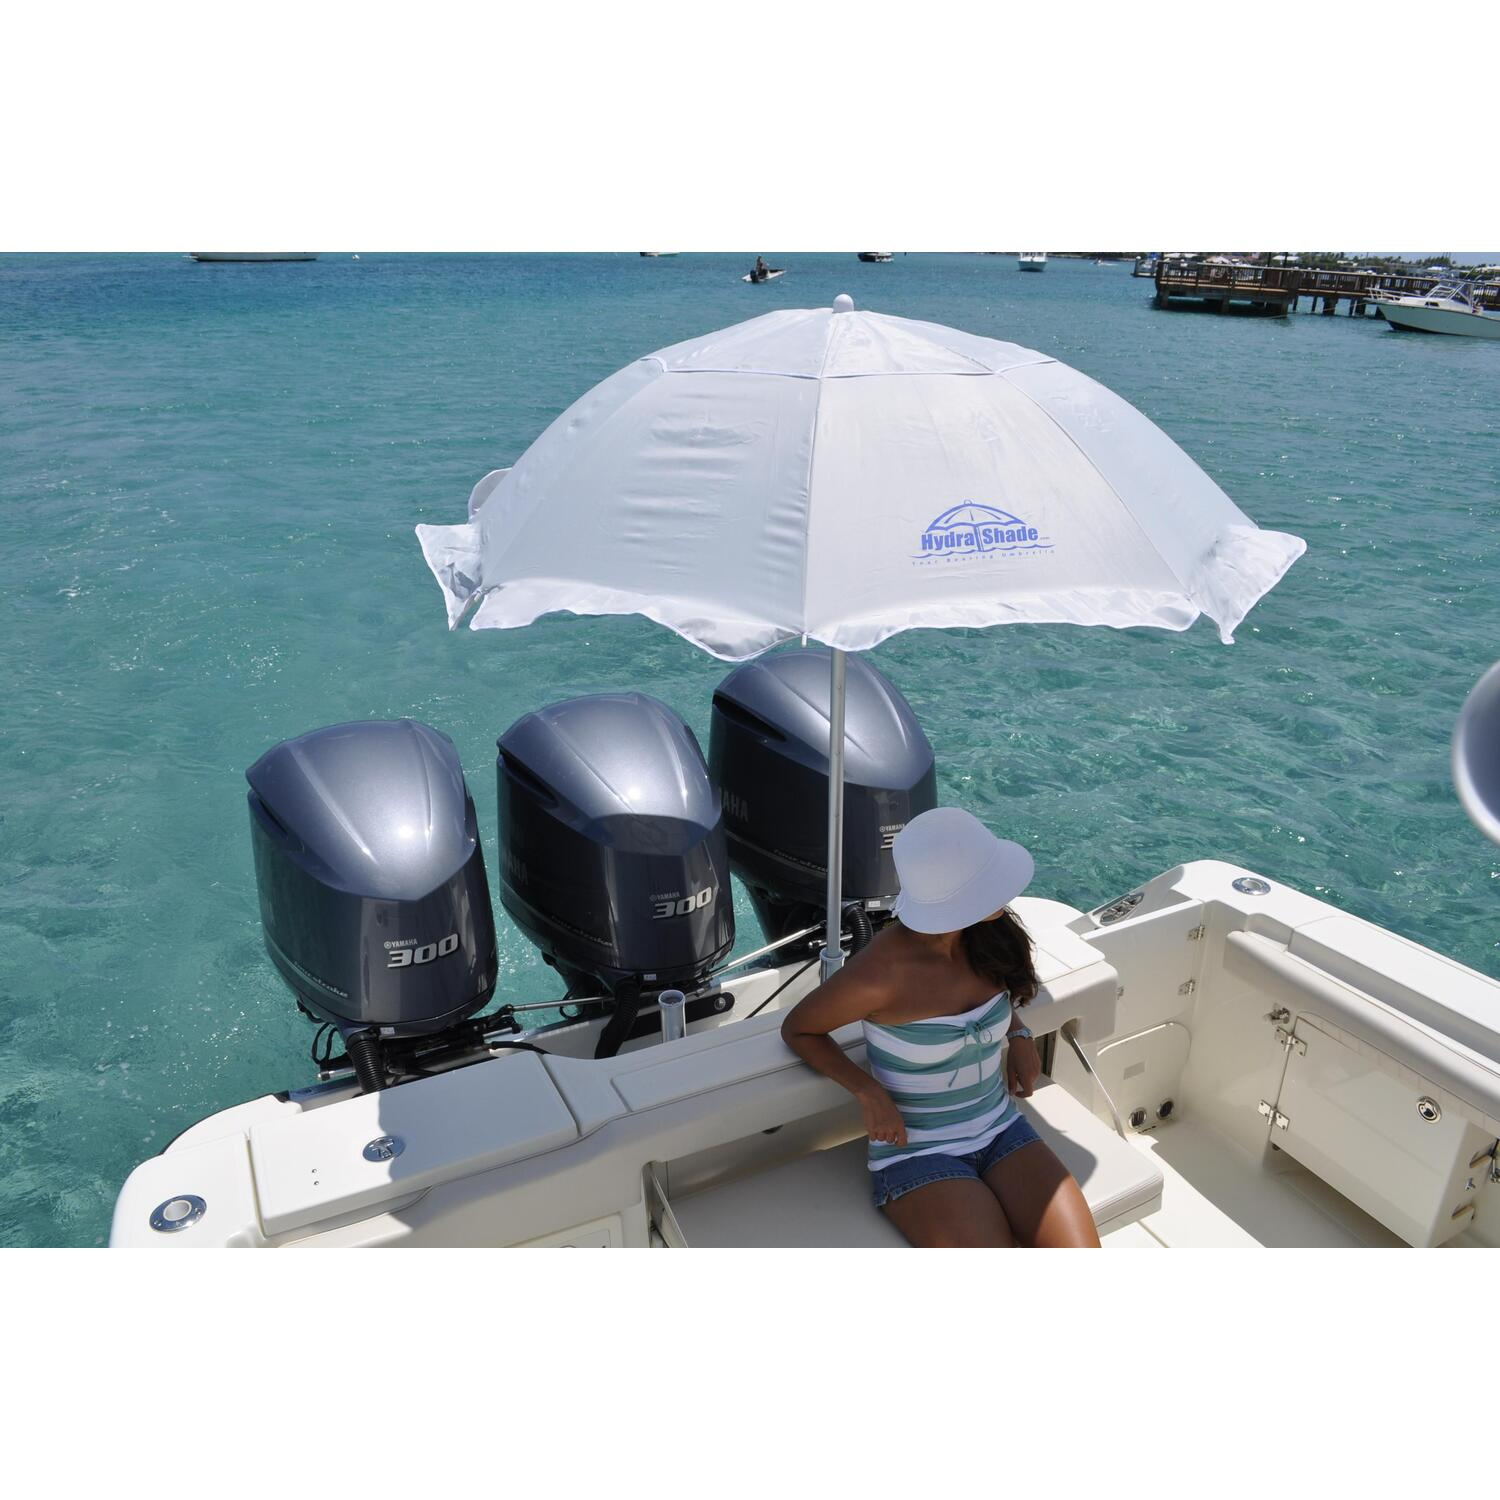 Boating And Marine Accessories Marine Stores And Supplies ...